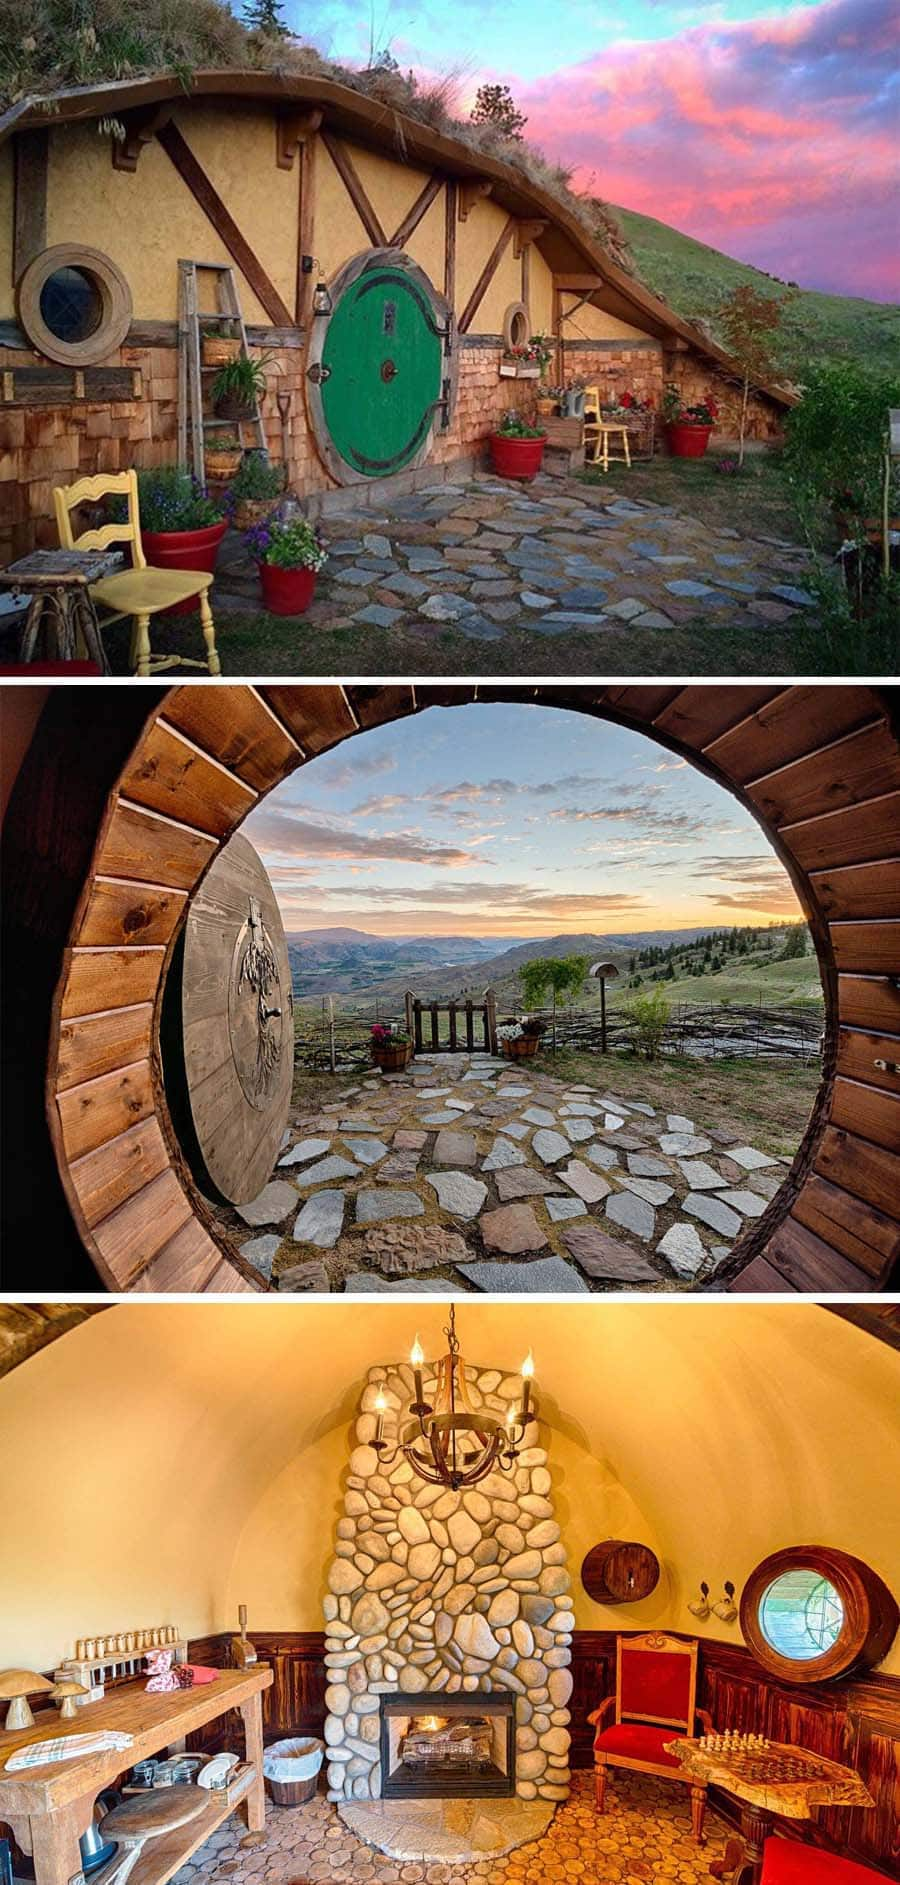 Hobbit home Airbnb in Washington state